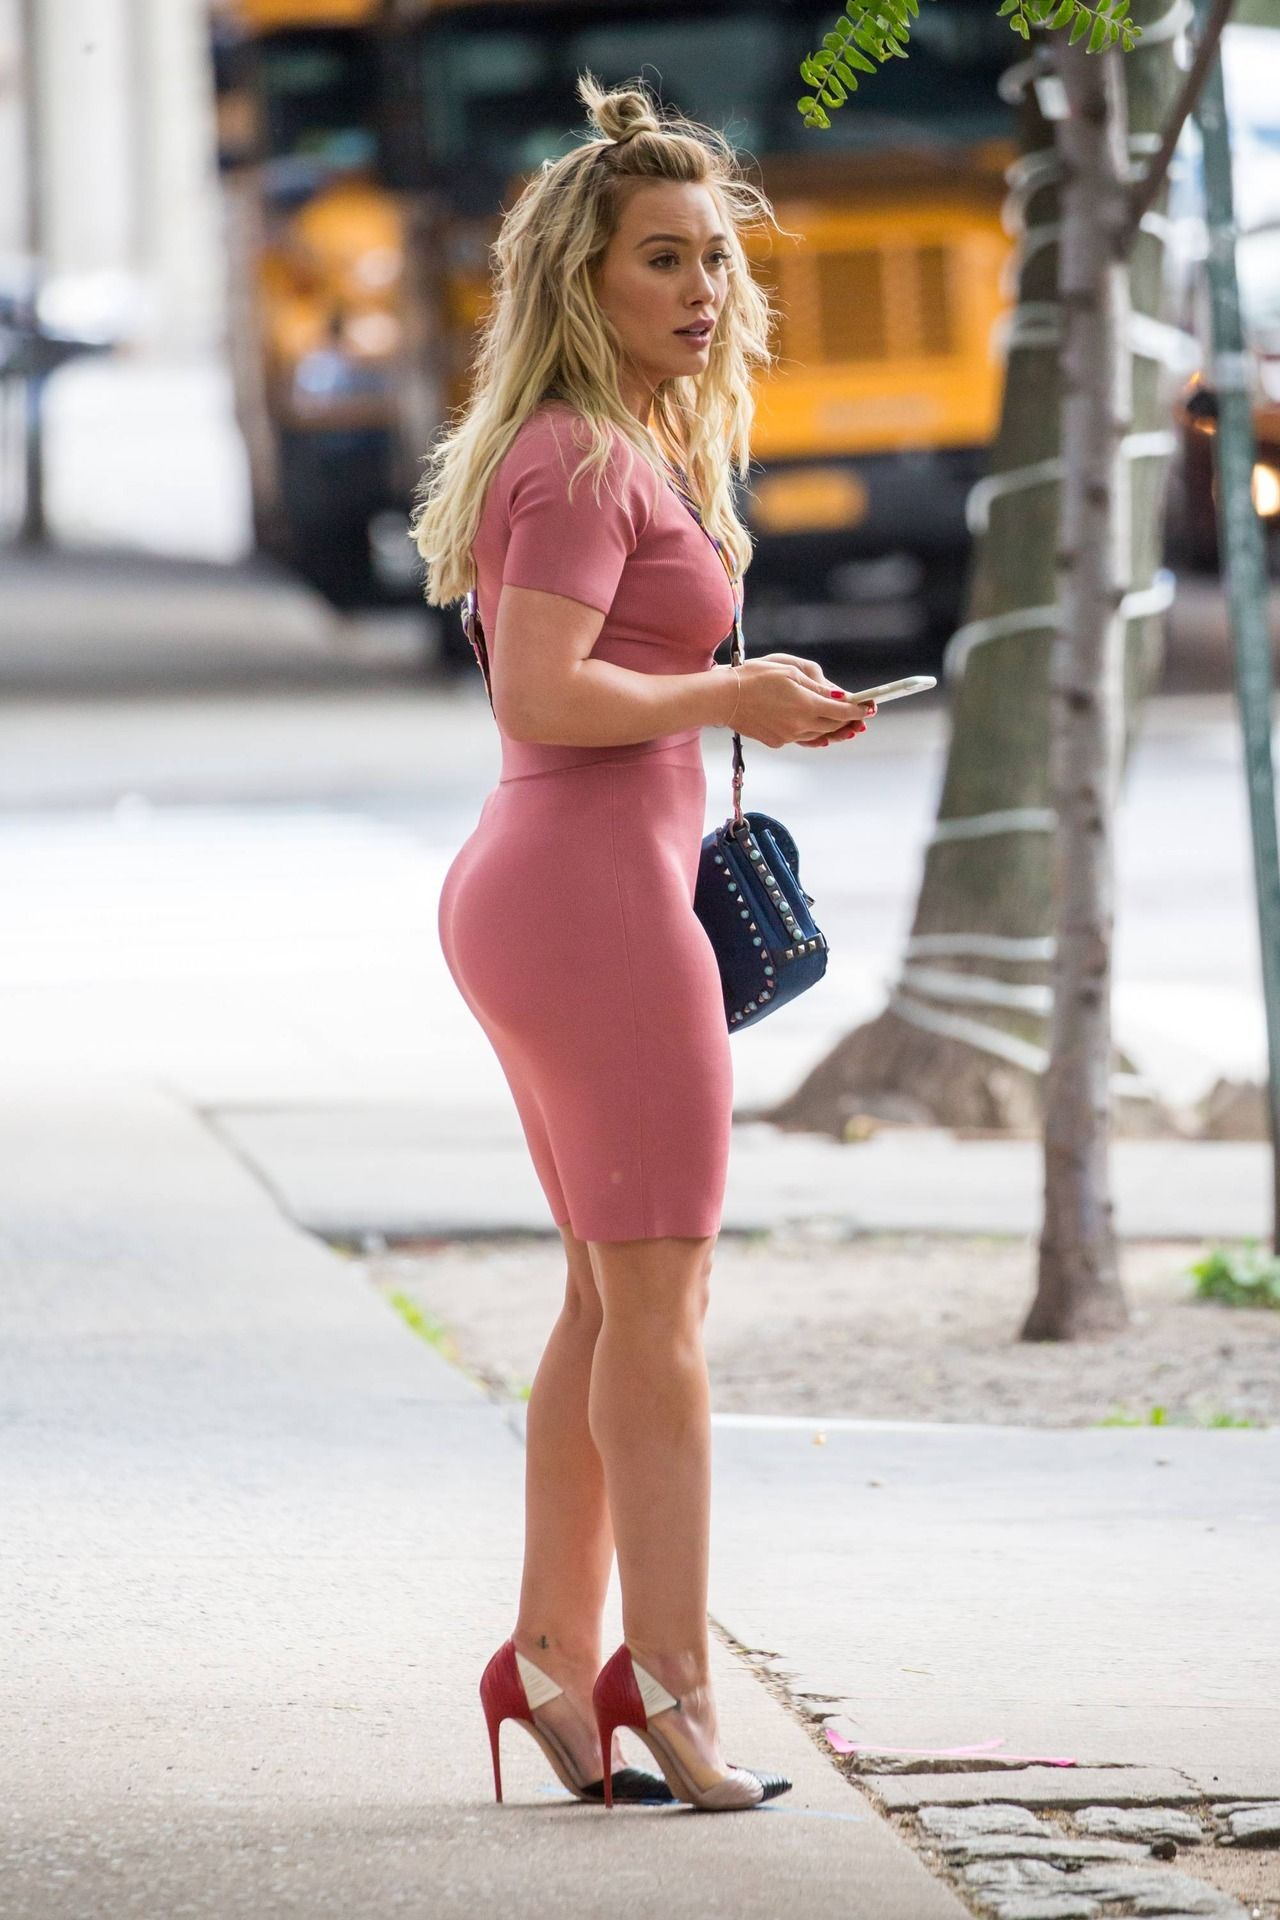 Hilary duff celebrities in pinterest hilary duff